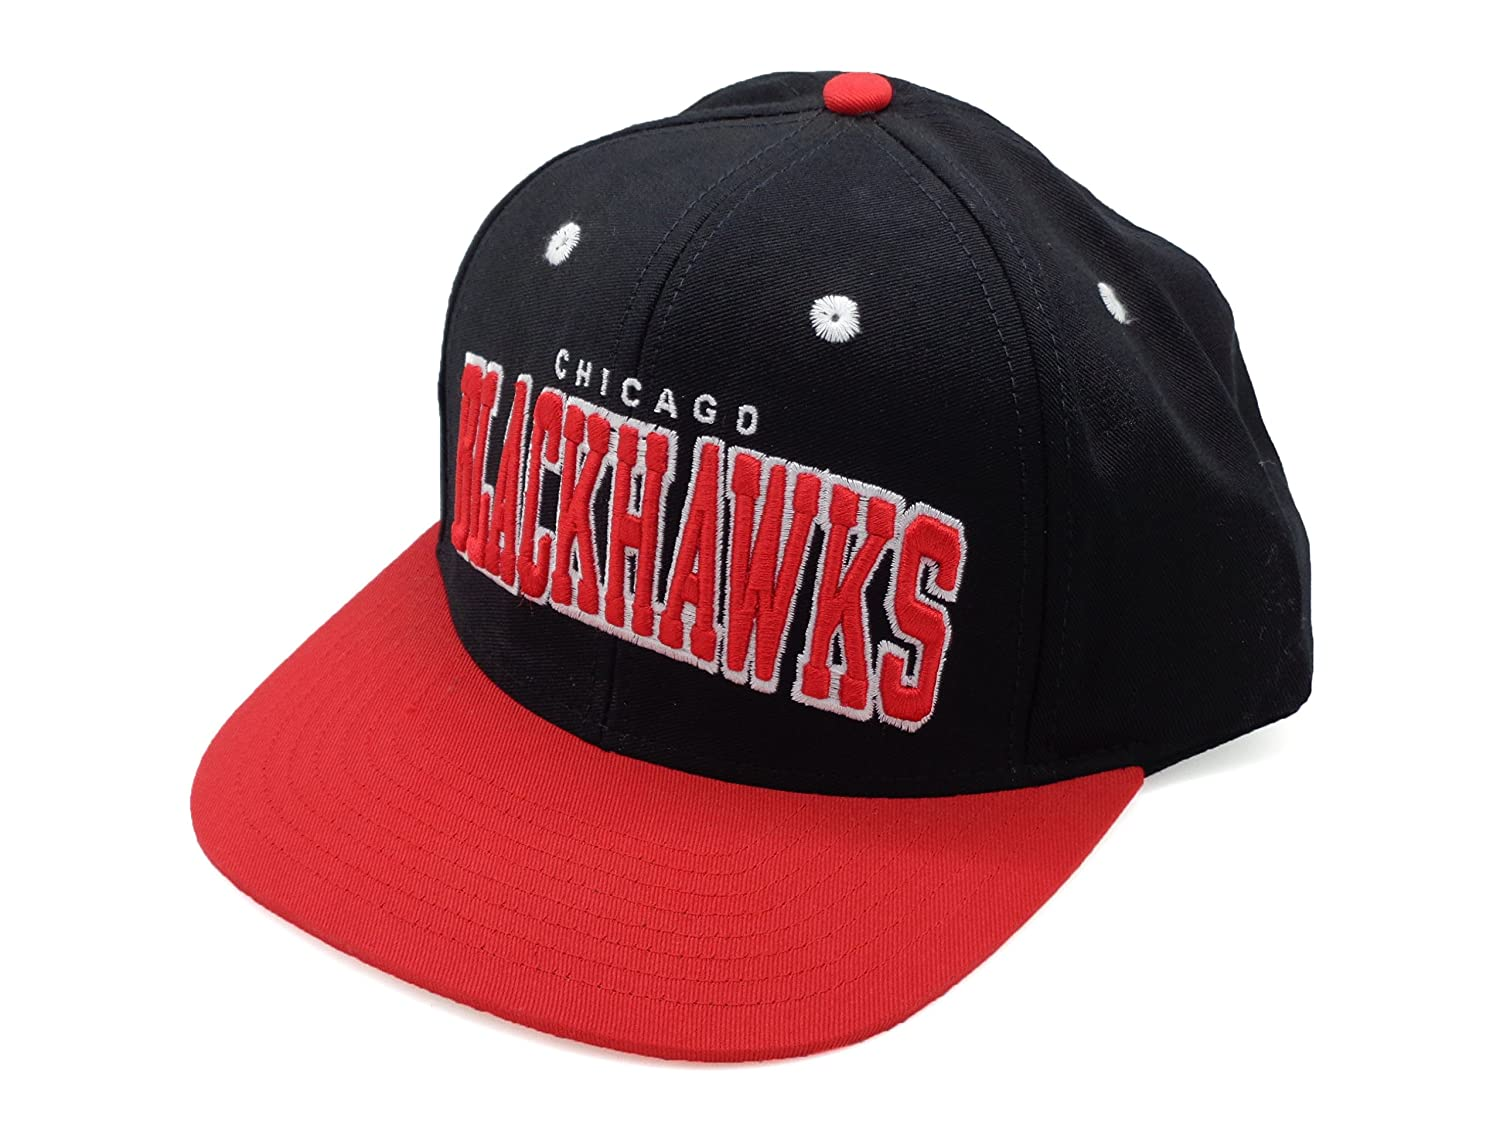 9e93918da71 Amazon.com   NHL Chicago Blackhawks Retro Flat Bill Black Red Snapback Hat  Cap Reebok   Sports Fan Baseball Caps   Sports   Outdoors